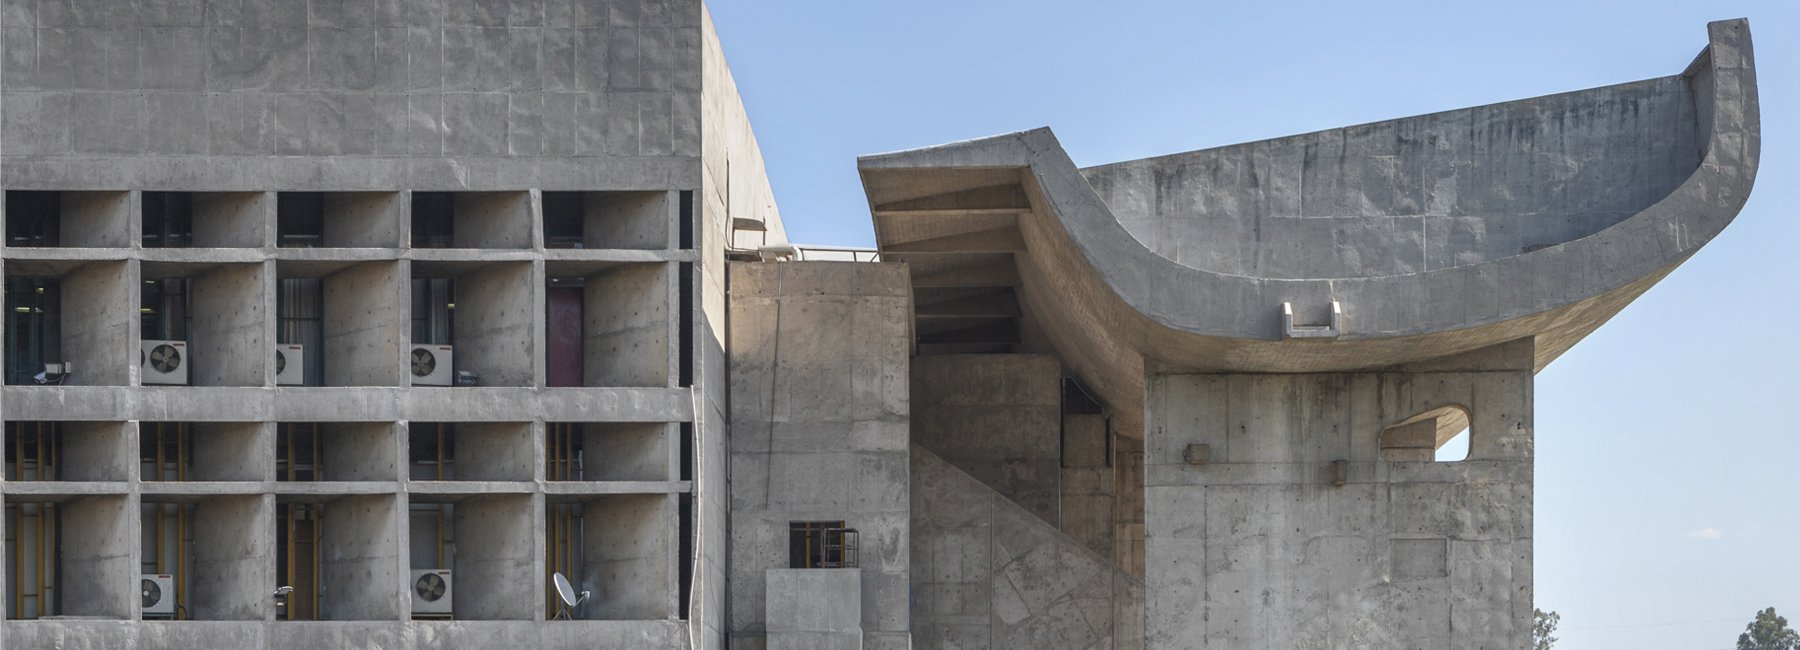 Modernist architecture of Chandigarh in new photo series